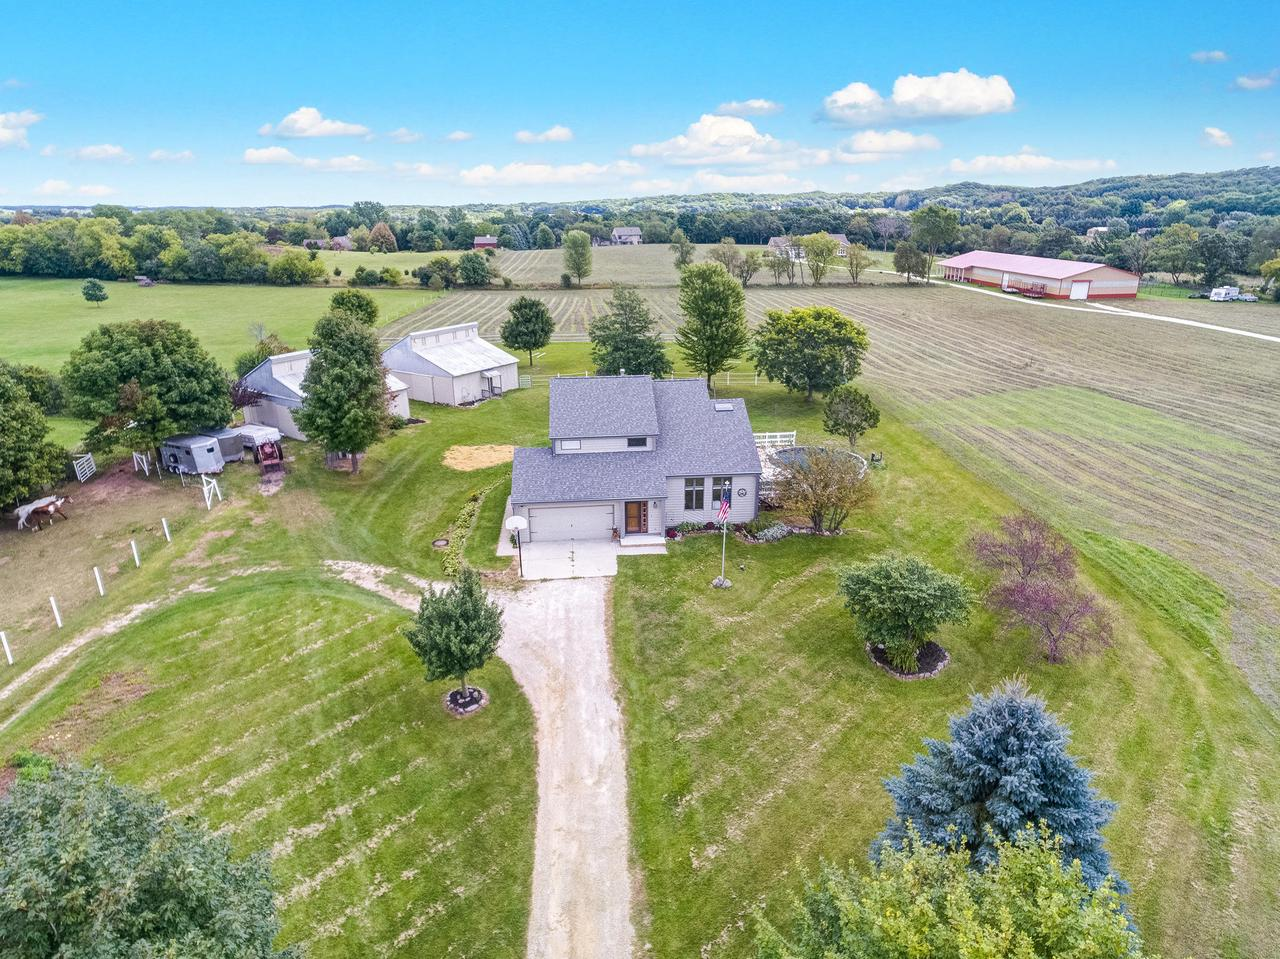 Welcome to this Picturesque and idyllic Hobby Farm in the Heart of the Kettle Moriane. 5 Acres awaits you  w/ cthdrl ceilings, Gorgeous kitchen that truly shines w/ Granite, huge island & space for table that seats 8 plus!  Sunroom off the kitchen w/ a wall of decorative lead glass  doors into DR, kitchen,& LR overlooking the pool& hot tub. Grey wood tiled floors&white woodwork, &skylights brighten it all& main flr laundry& another patio are bonus! Upstairs boasts 3 lrg bdrms&master suite w/ oversized walkin tile shower w/ exposed shower panel of  jets& 2 sinks. Step outside to the equestrian site of this home& 4 stable barn w/ hay loft & tack room. Fenced pastures & riding space! Other building on the property for the hobbyist or contractor.All this close to Ice Age&Glacial Drumlin Trails